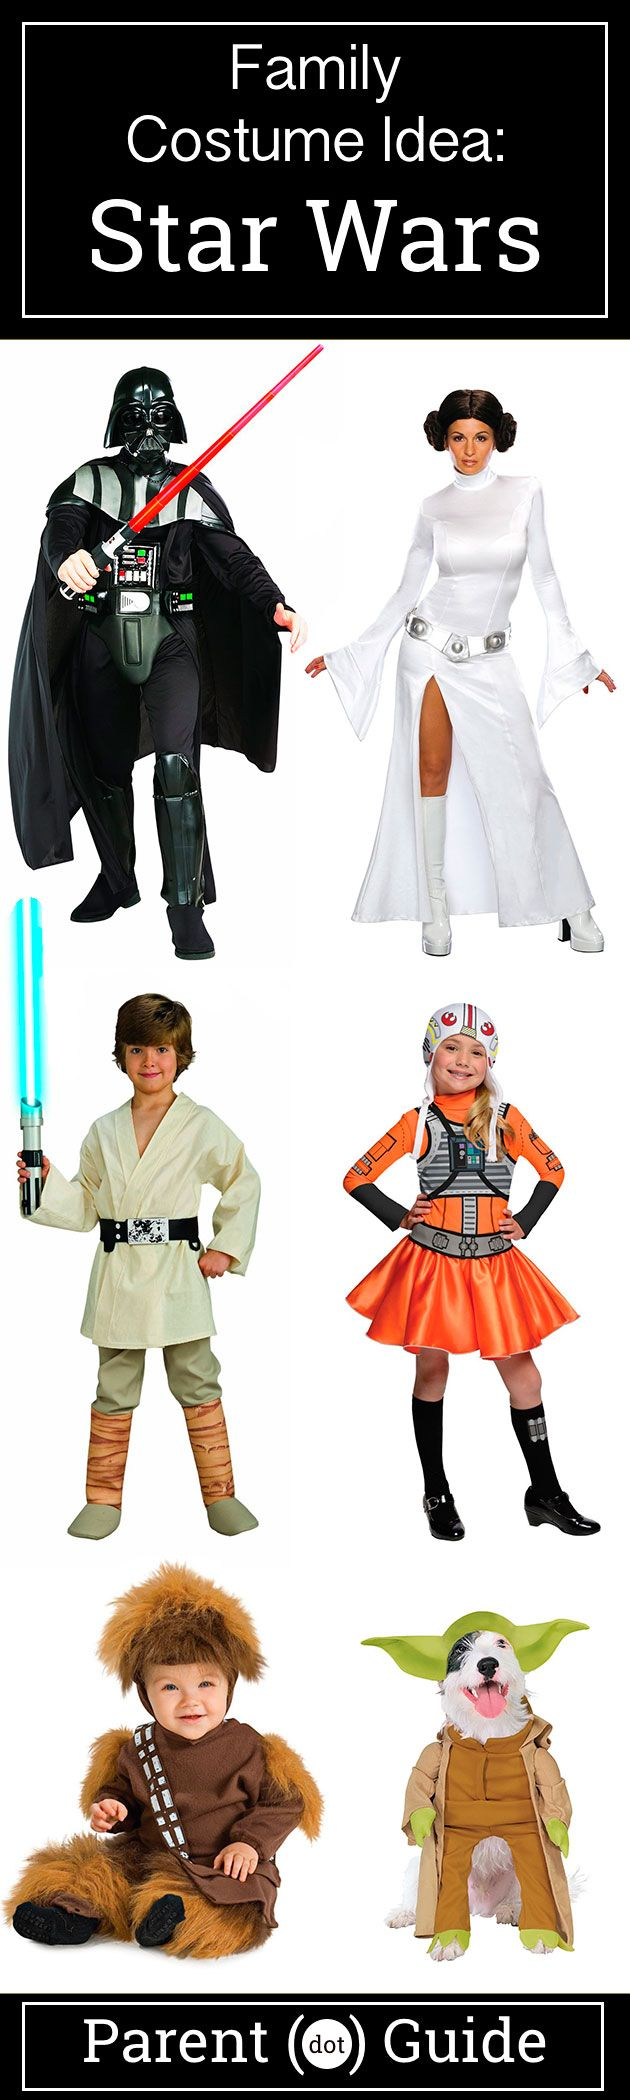 Long ago in a galaxy far away.... There were awesome costumes for your entire family. With a huge selection of Star Wars costumes your family can go as any combination of characters from this epic series including Luke Skywalker, Princess Leia, Chewbacca and Yoda.